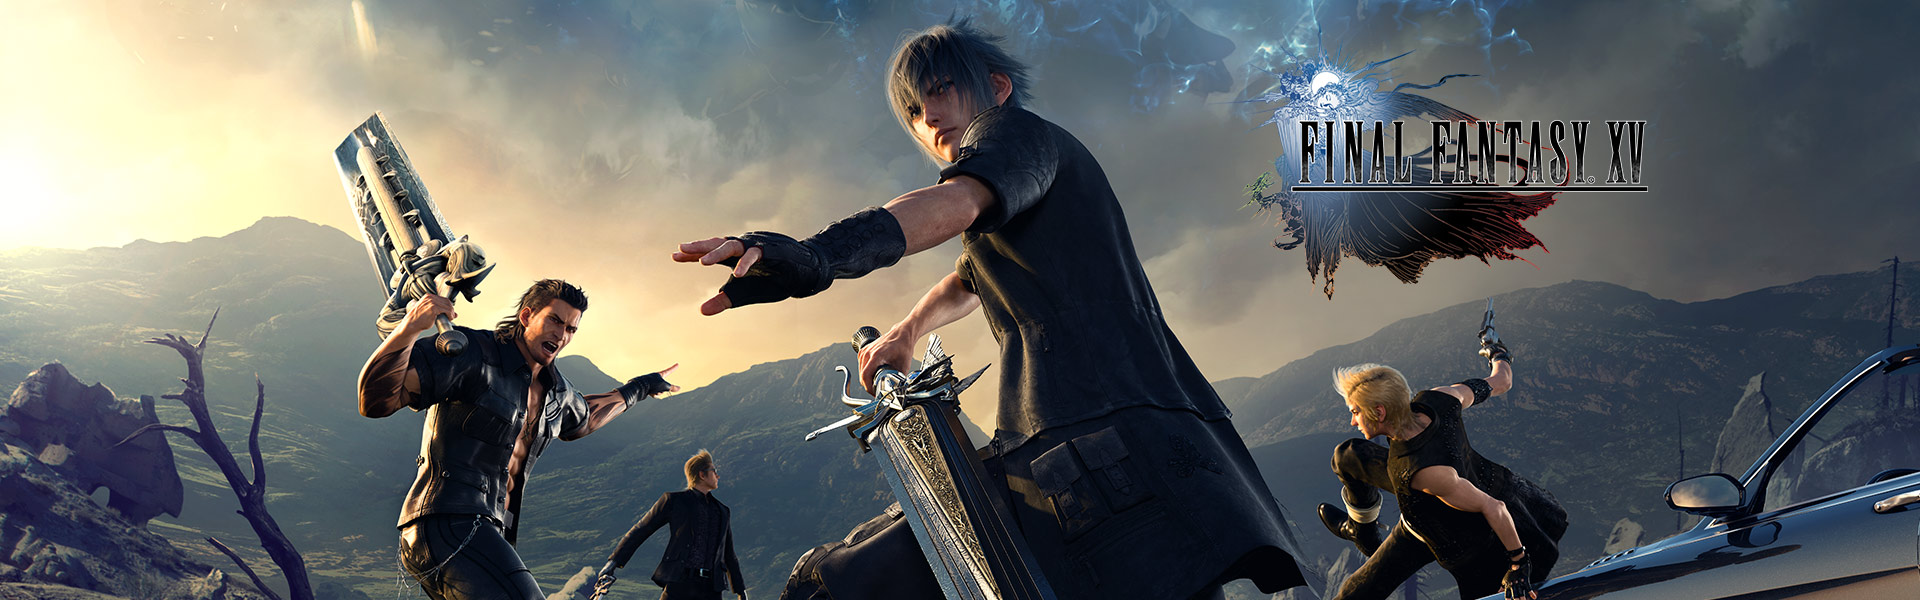 FINAL FANTASY XV Hero